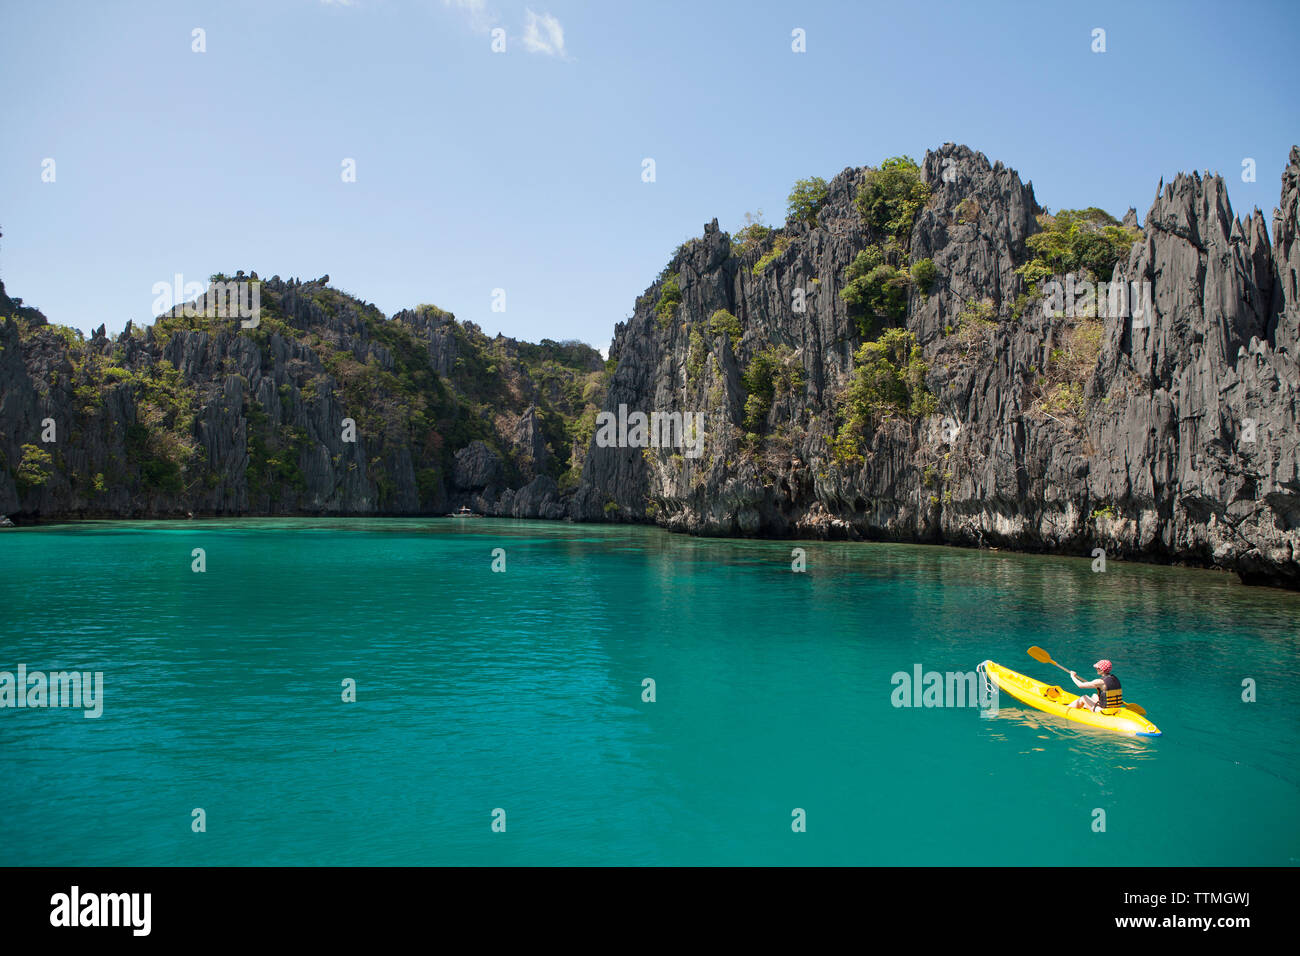 PHILIPPINES, Palawan, El Nido, Miniloc Island, a woman kayaks through the crystal clear waters of Small Lagoon on Miniloc Island located in Bacuit Bay - Stock Image